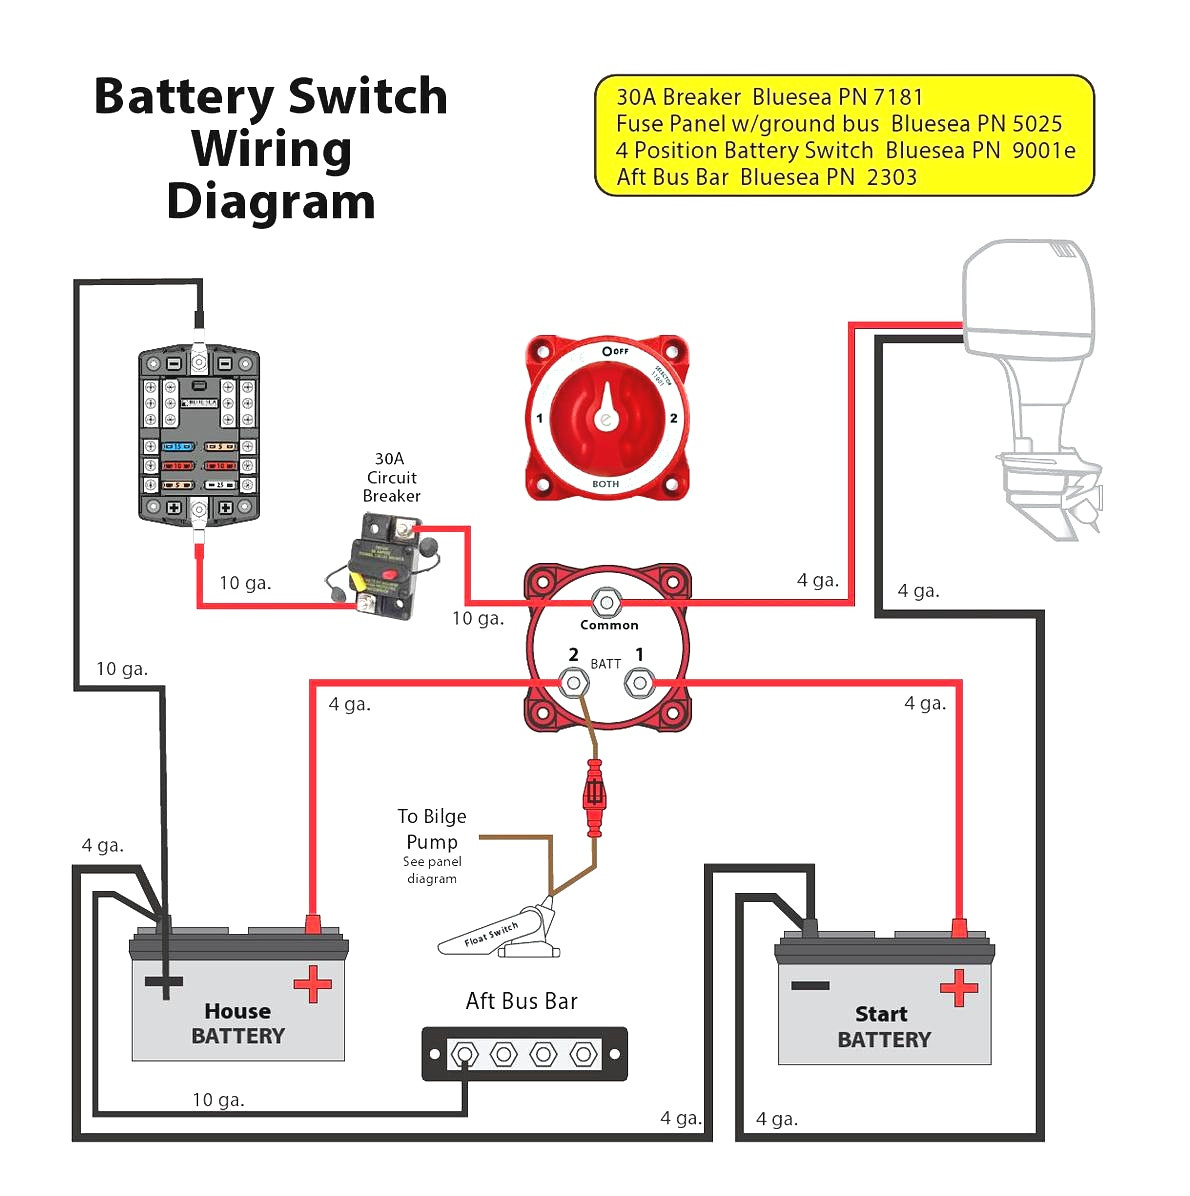 Battery Wire Diagrams | Wiring Diagram - Dual Alternator Wiring Diagram